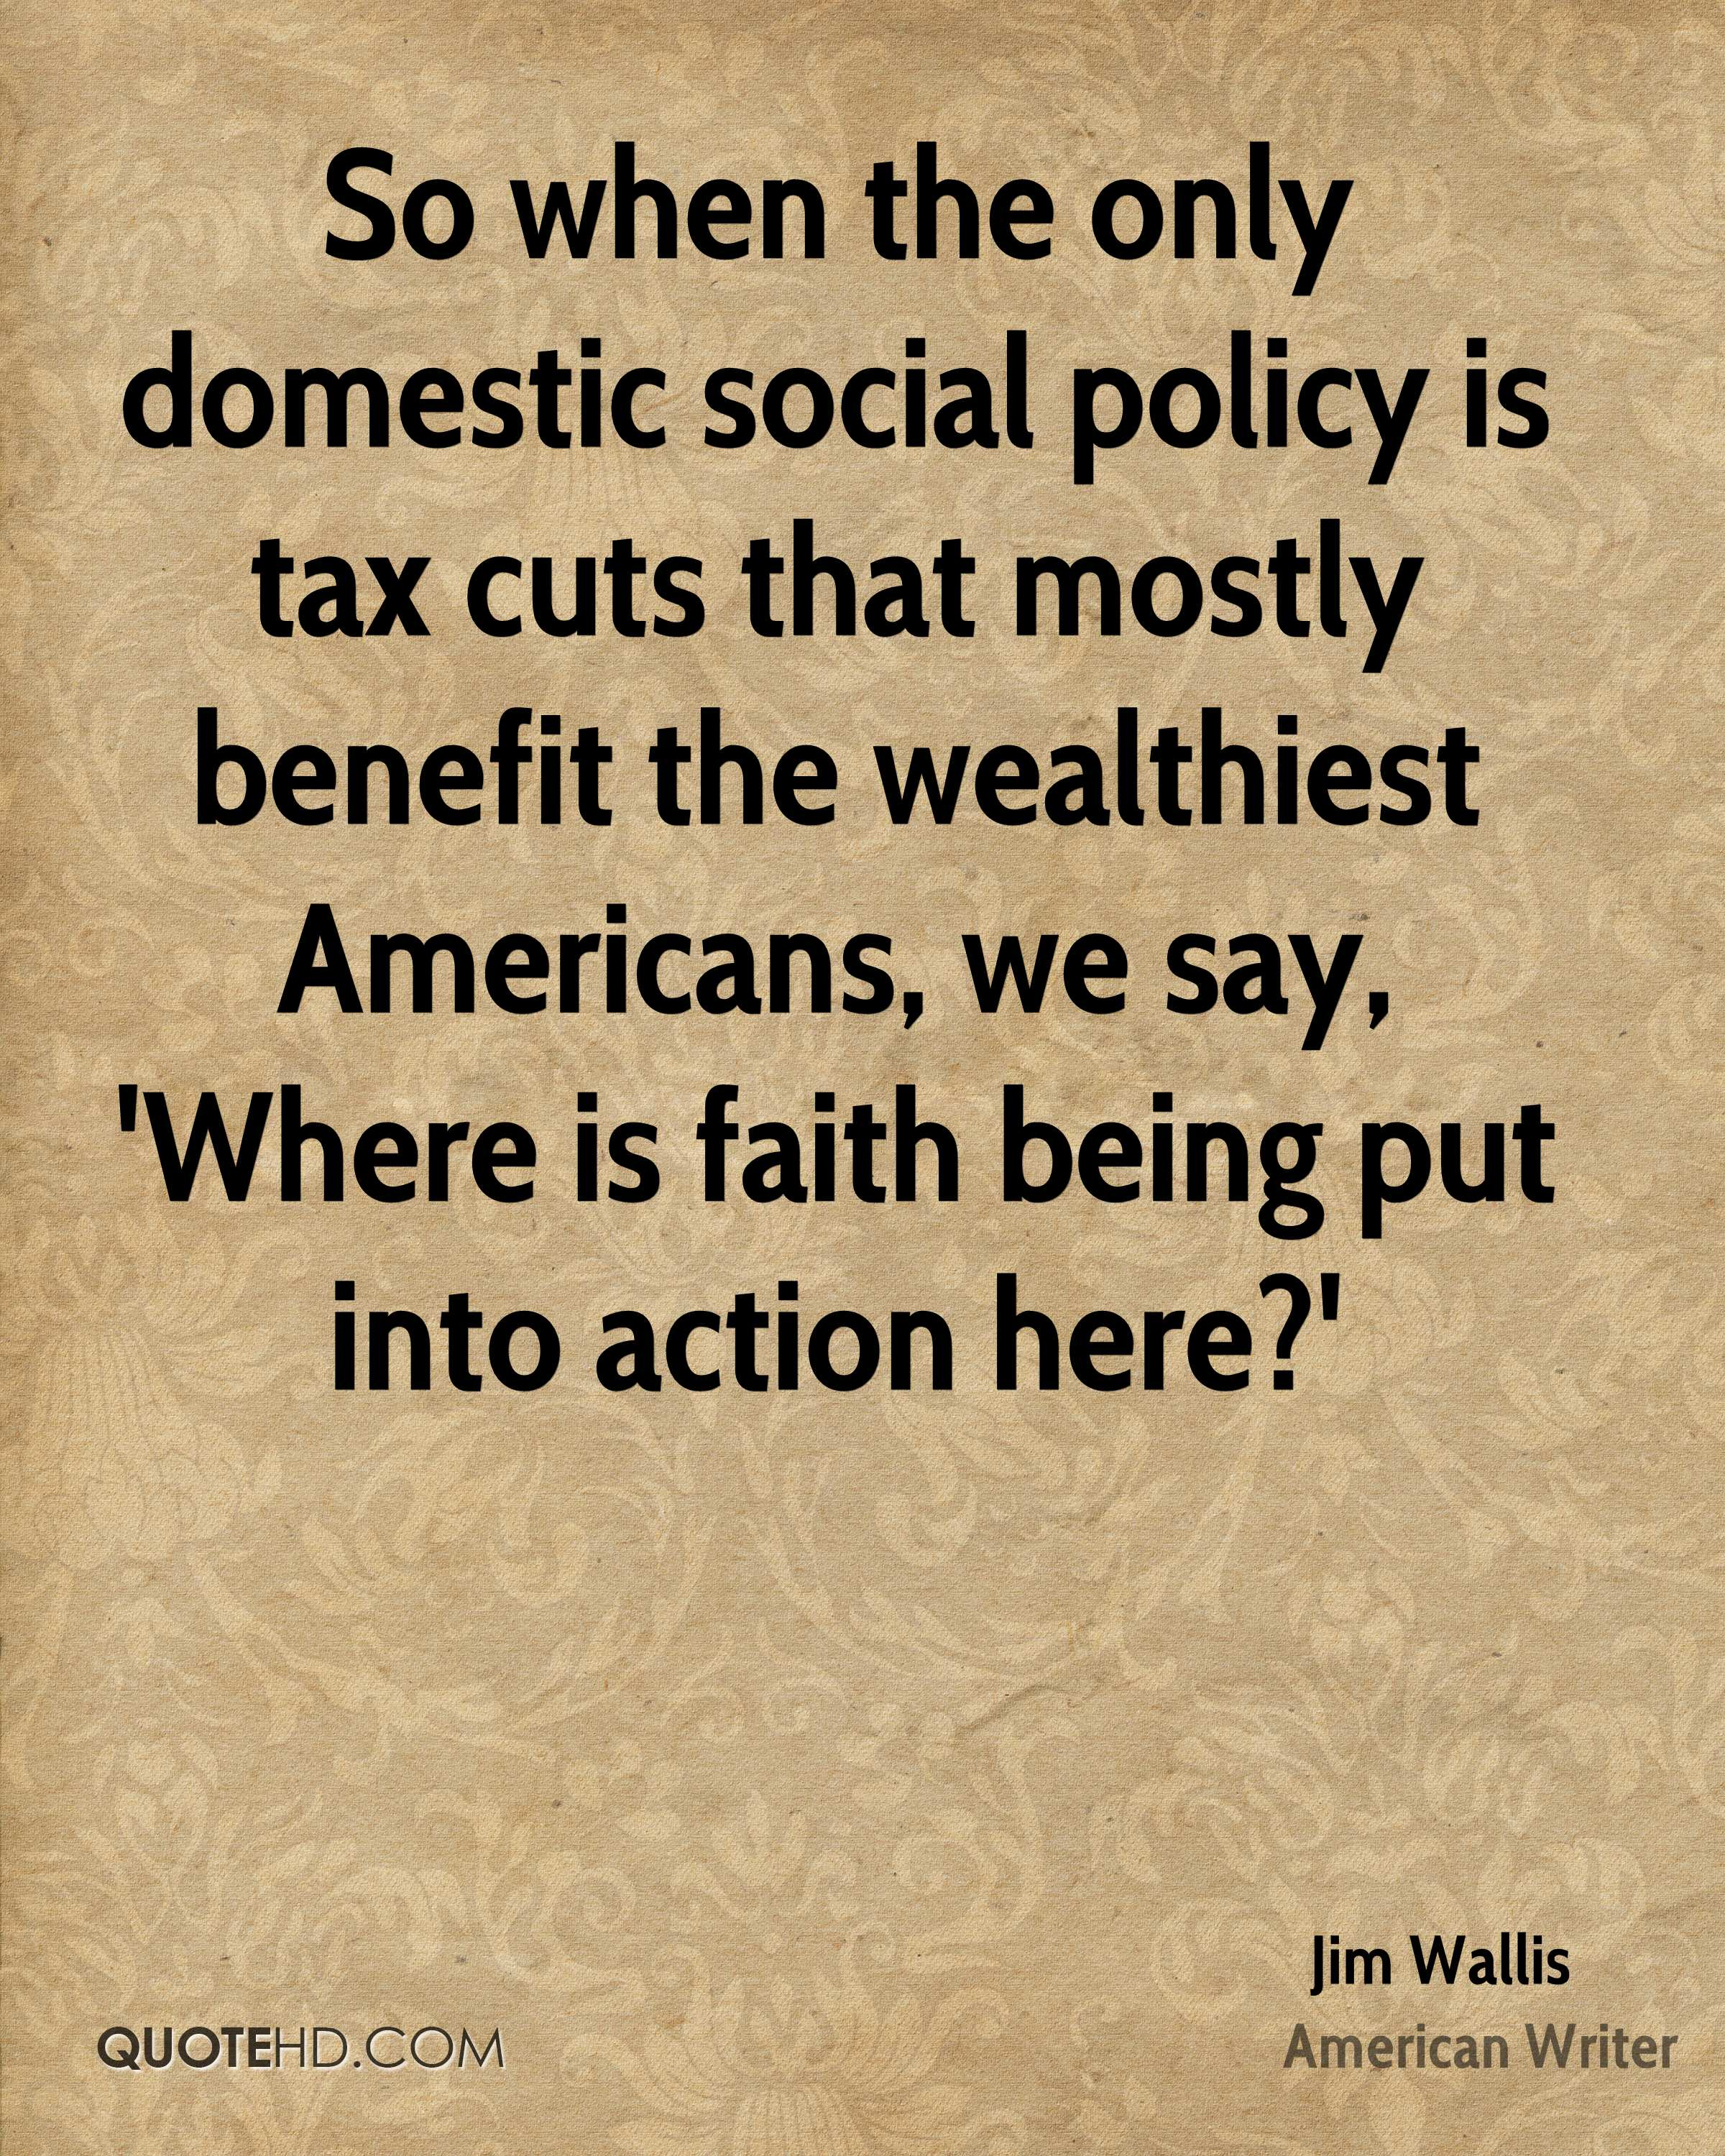 So when the only domestic social policy is tax cuts that mostly benefit the wealthiest Americans, we say, 'Where is faith being put into action here?'